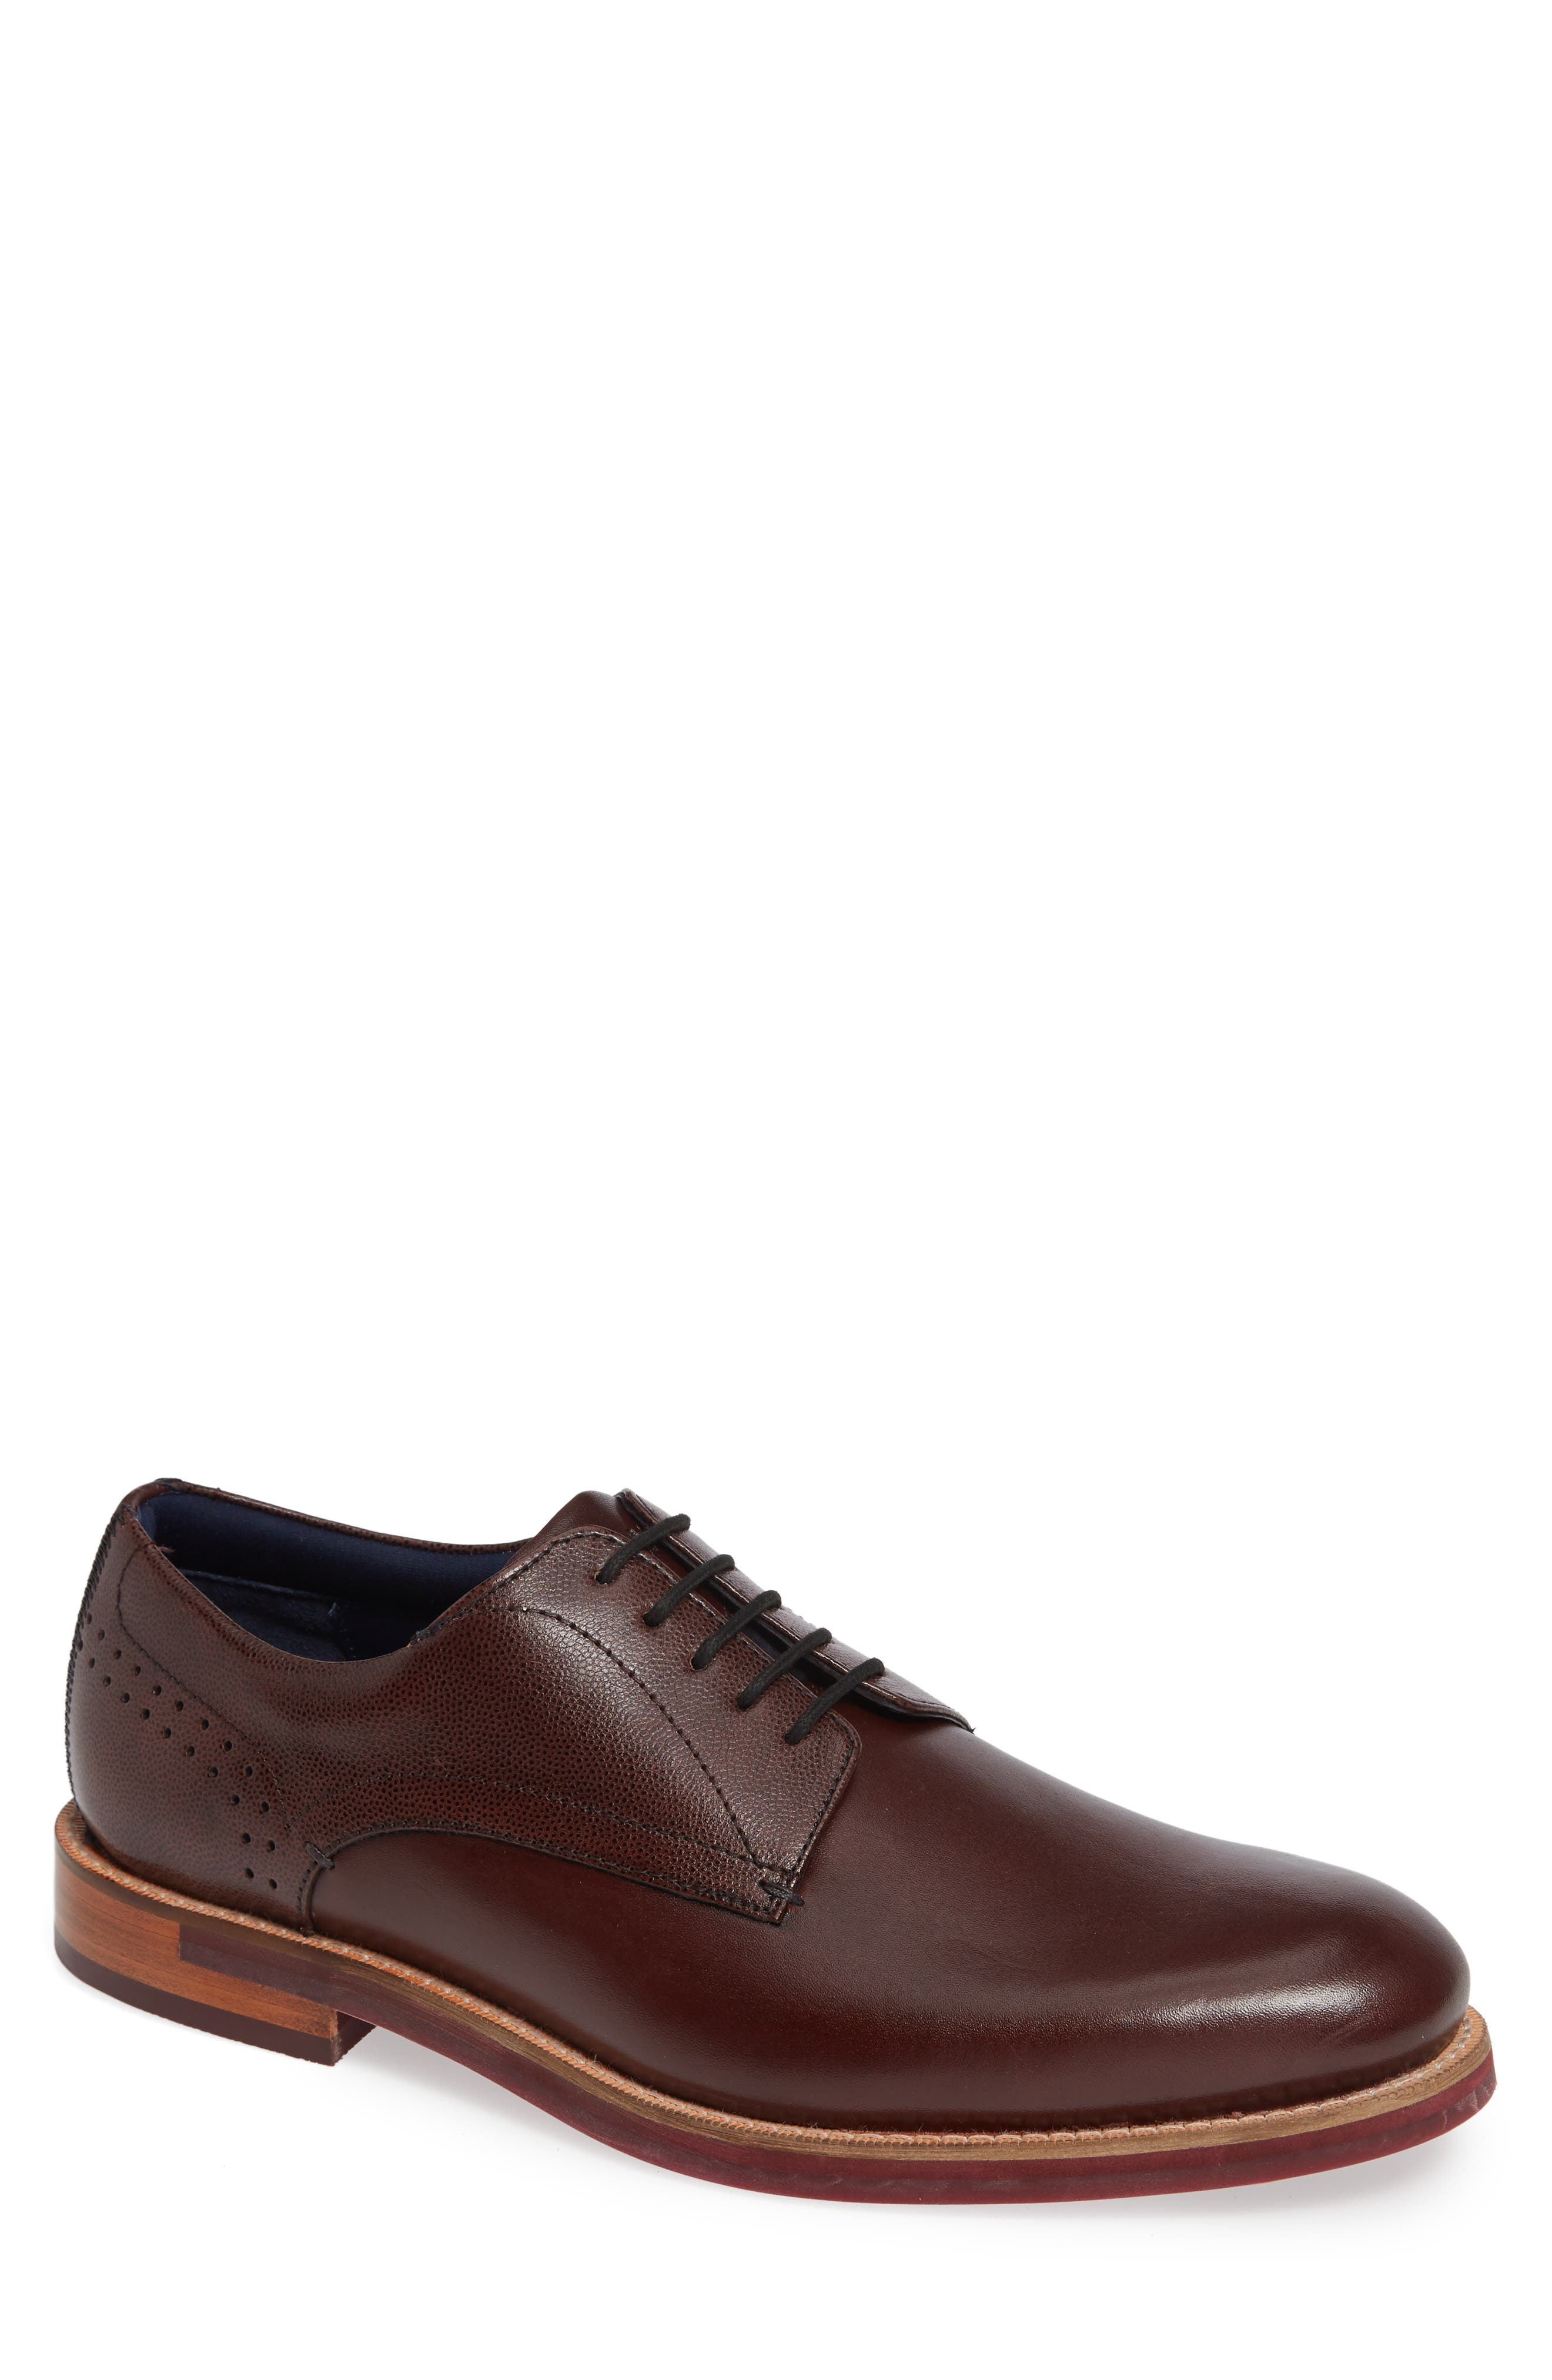 TED BAKER Men'S Jhorge Mixed Leather Plain-Toe Oxfords in Dark Red Leather